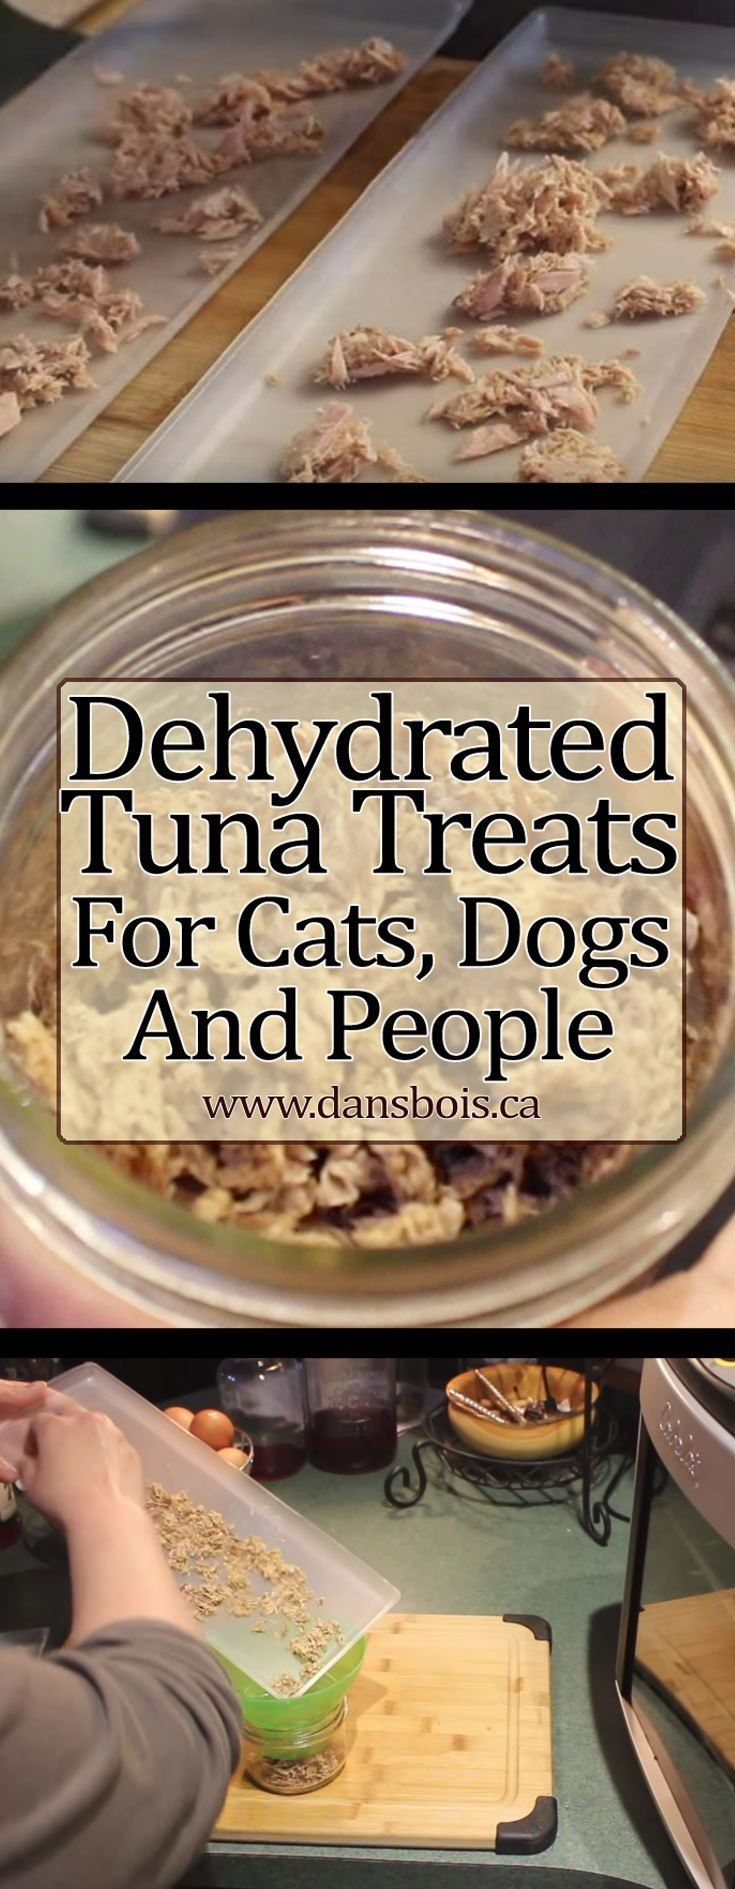 Dehydrated tuna pet treats for cats dogs people dog